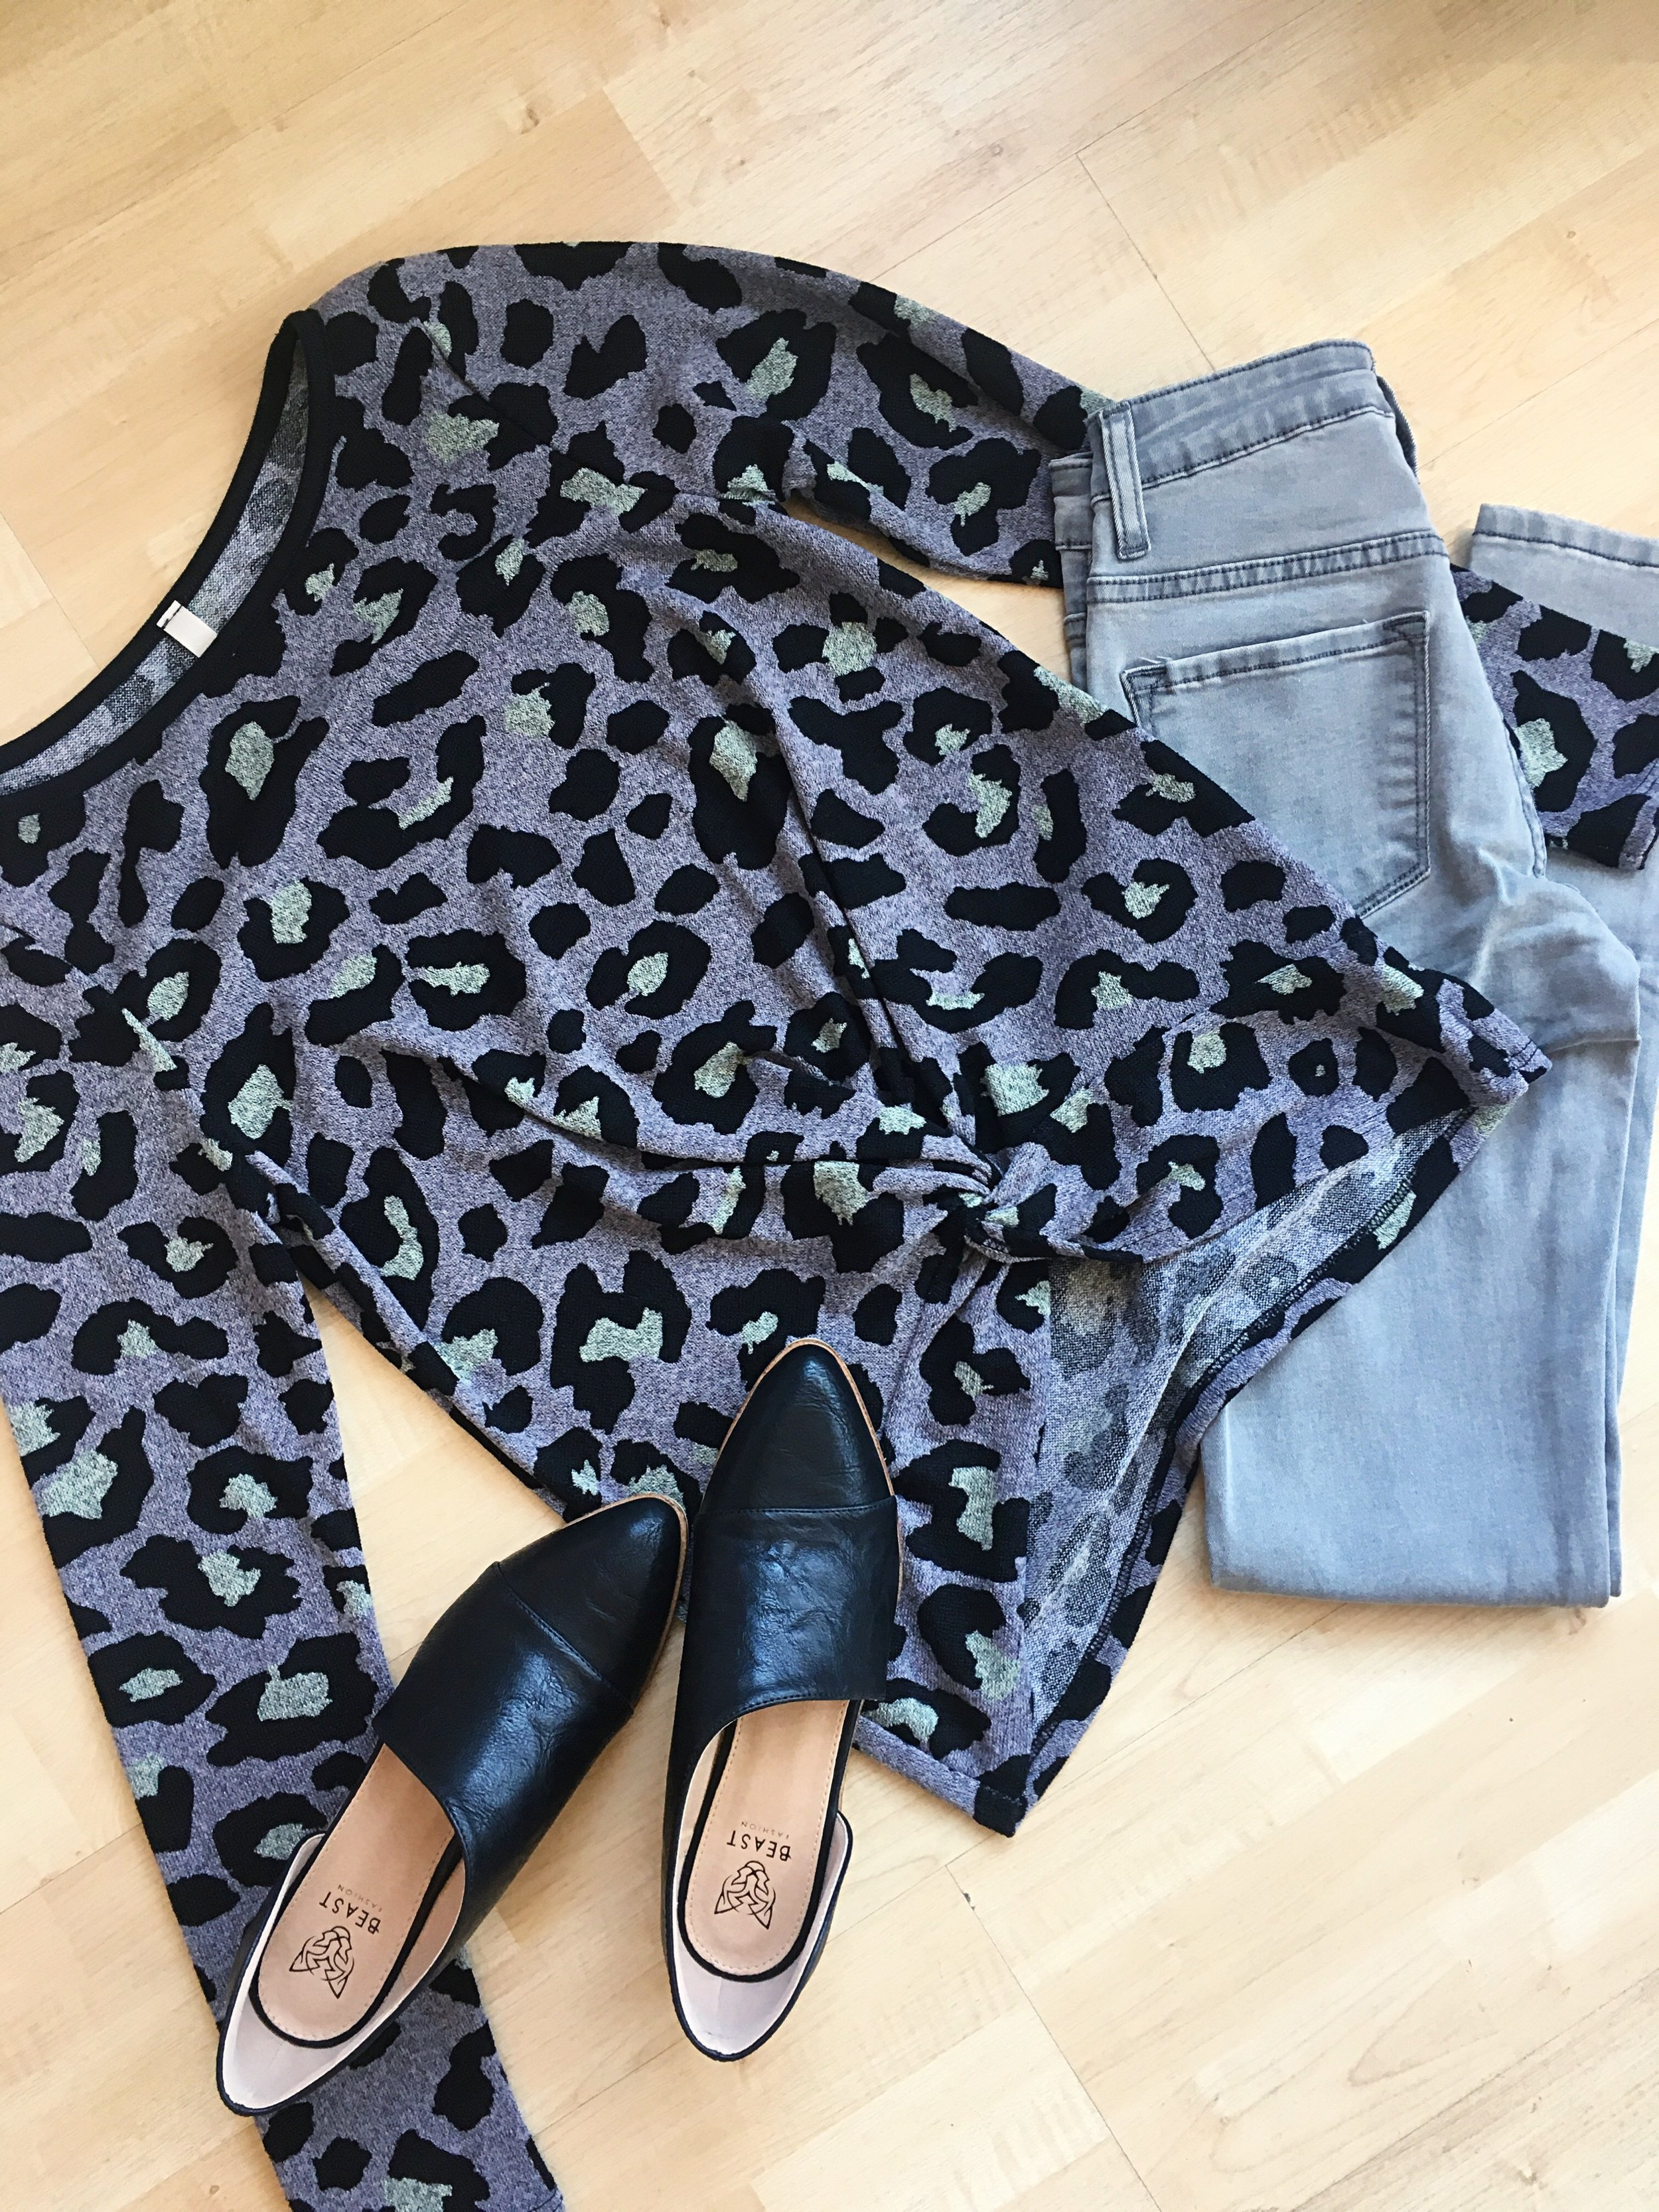 A subtle animal print can add a splash of pattern to your outfit.